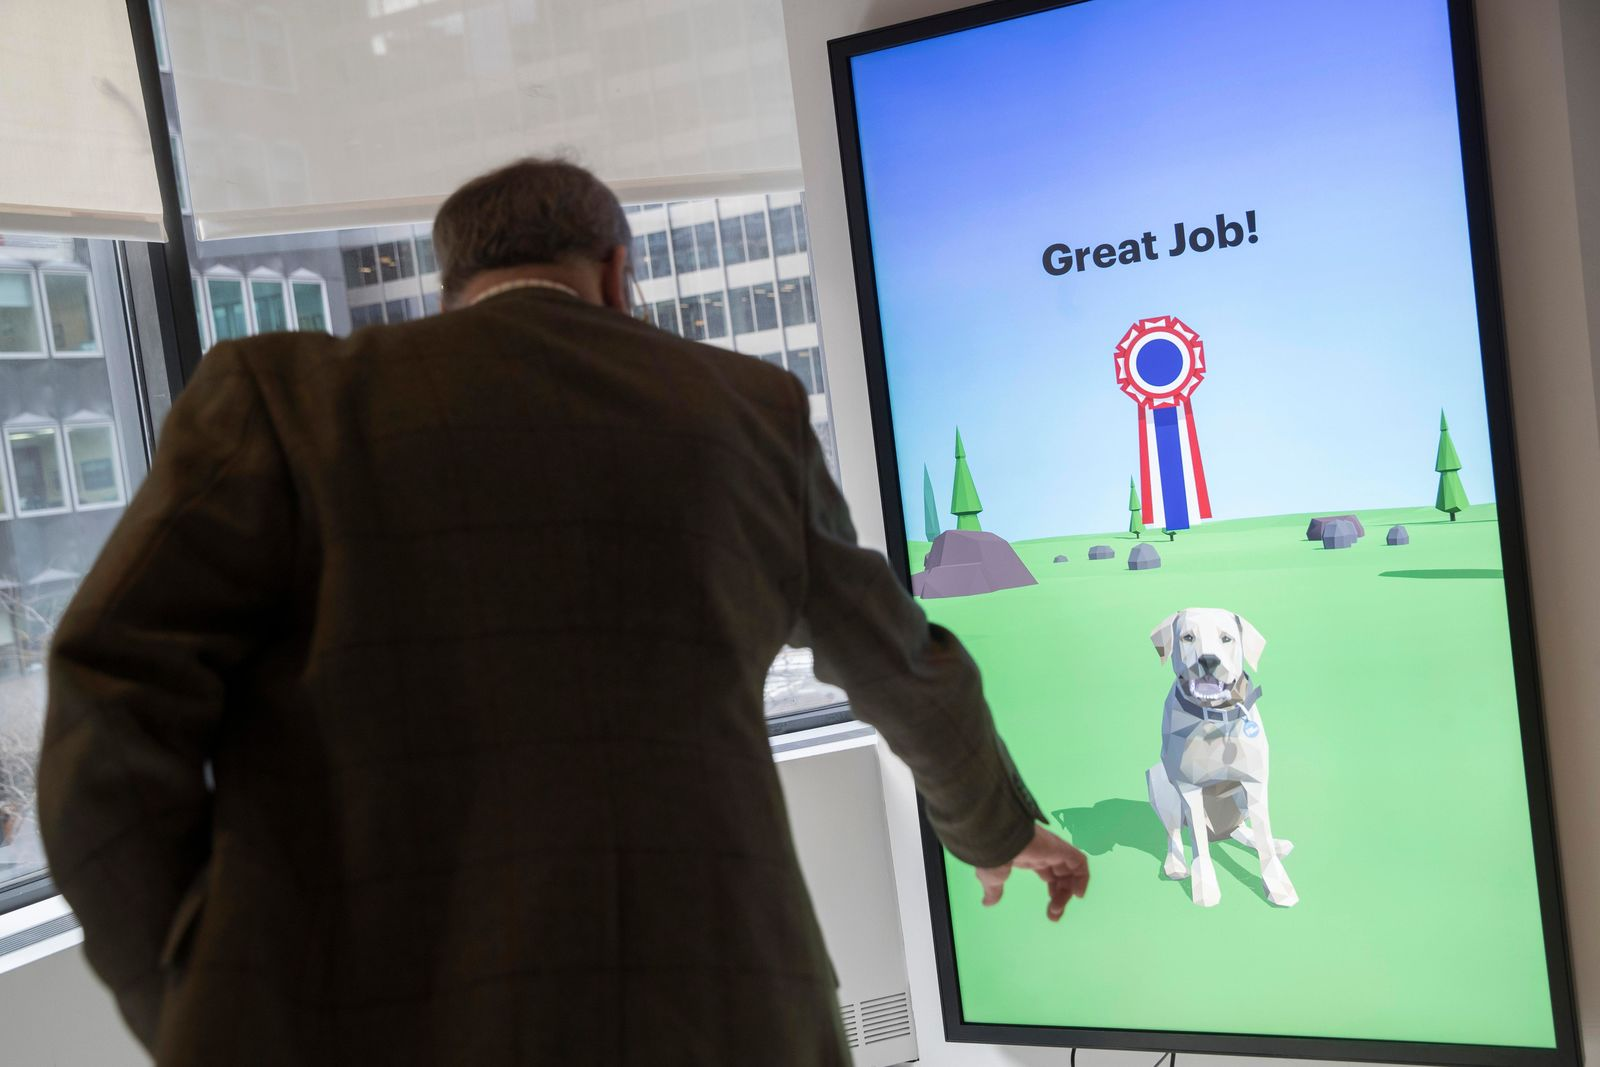 This Wednesday, Jan. 9, 2019, photo shows American Kennel Club Museum of the Dog's Executive Director Alan Fausel demonstrating the Basic Dog Training interactive kiosk with a virtual puppy during a tour of the museum in New York. The museum opens Feb. 8. (AP Photo/Mary Altaffer)